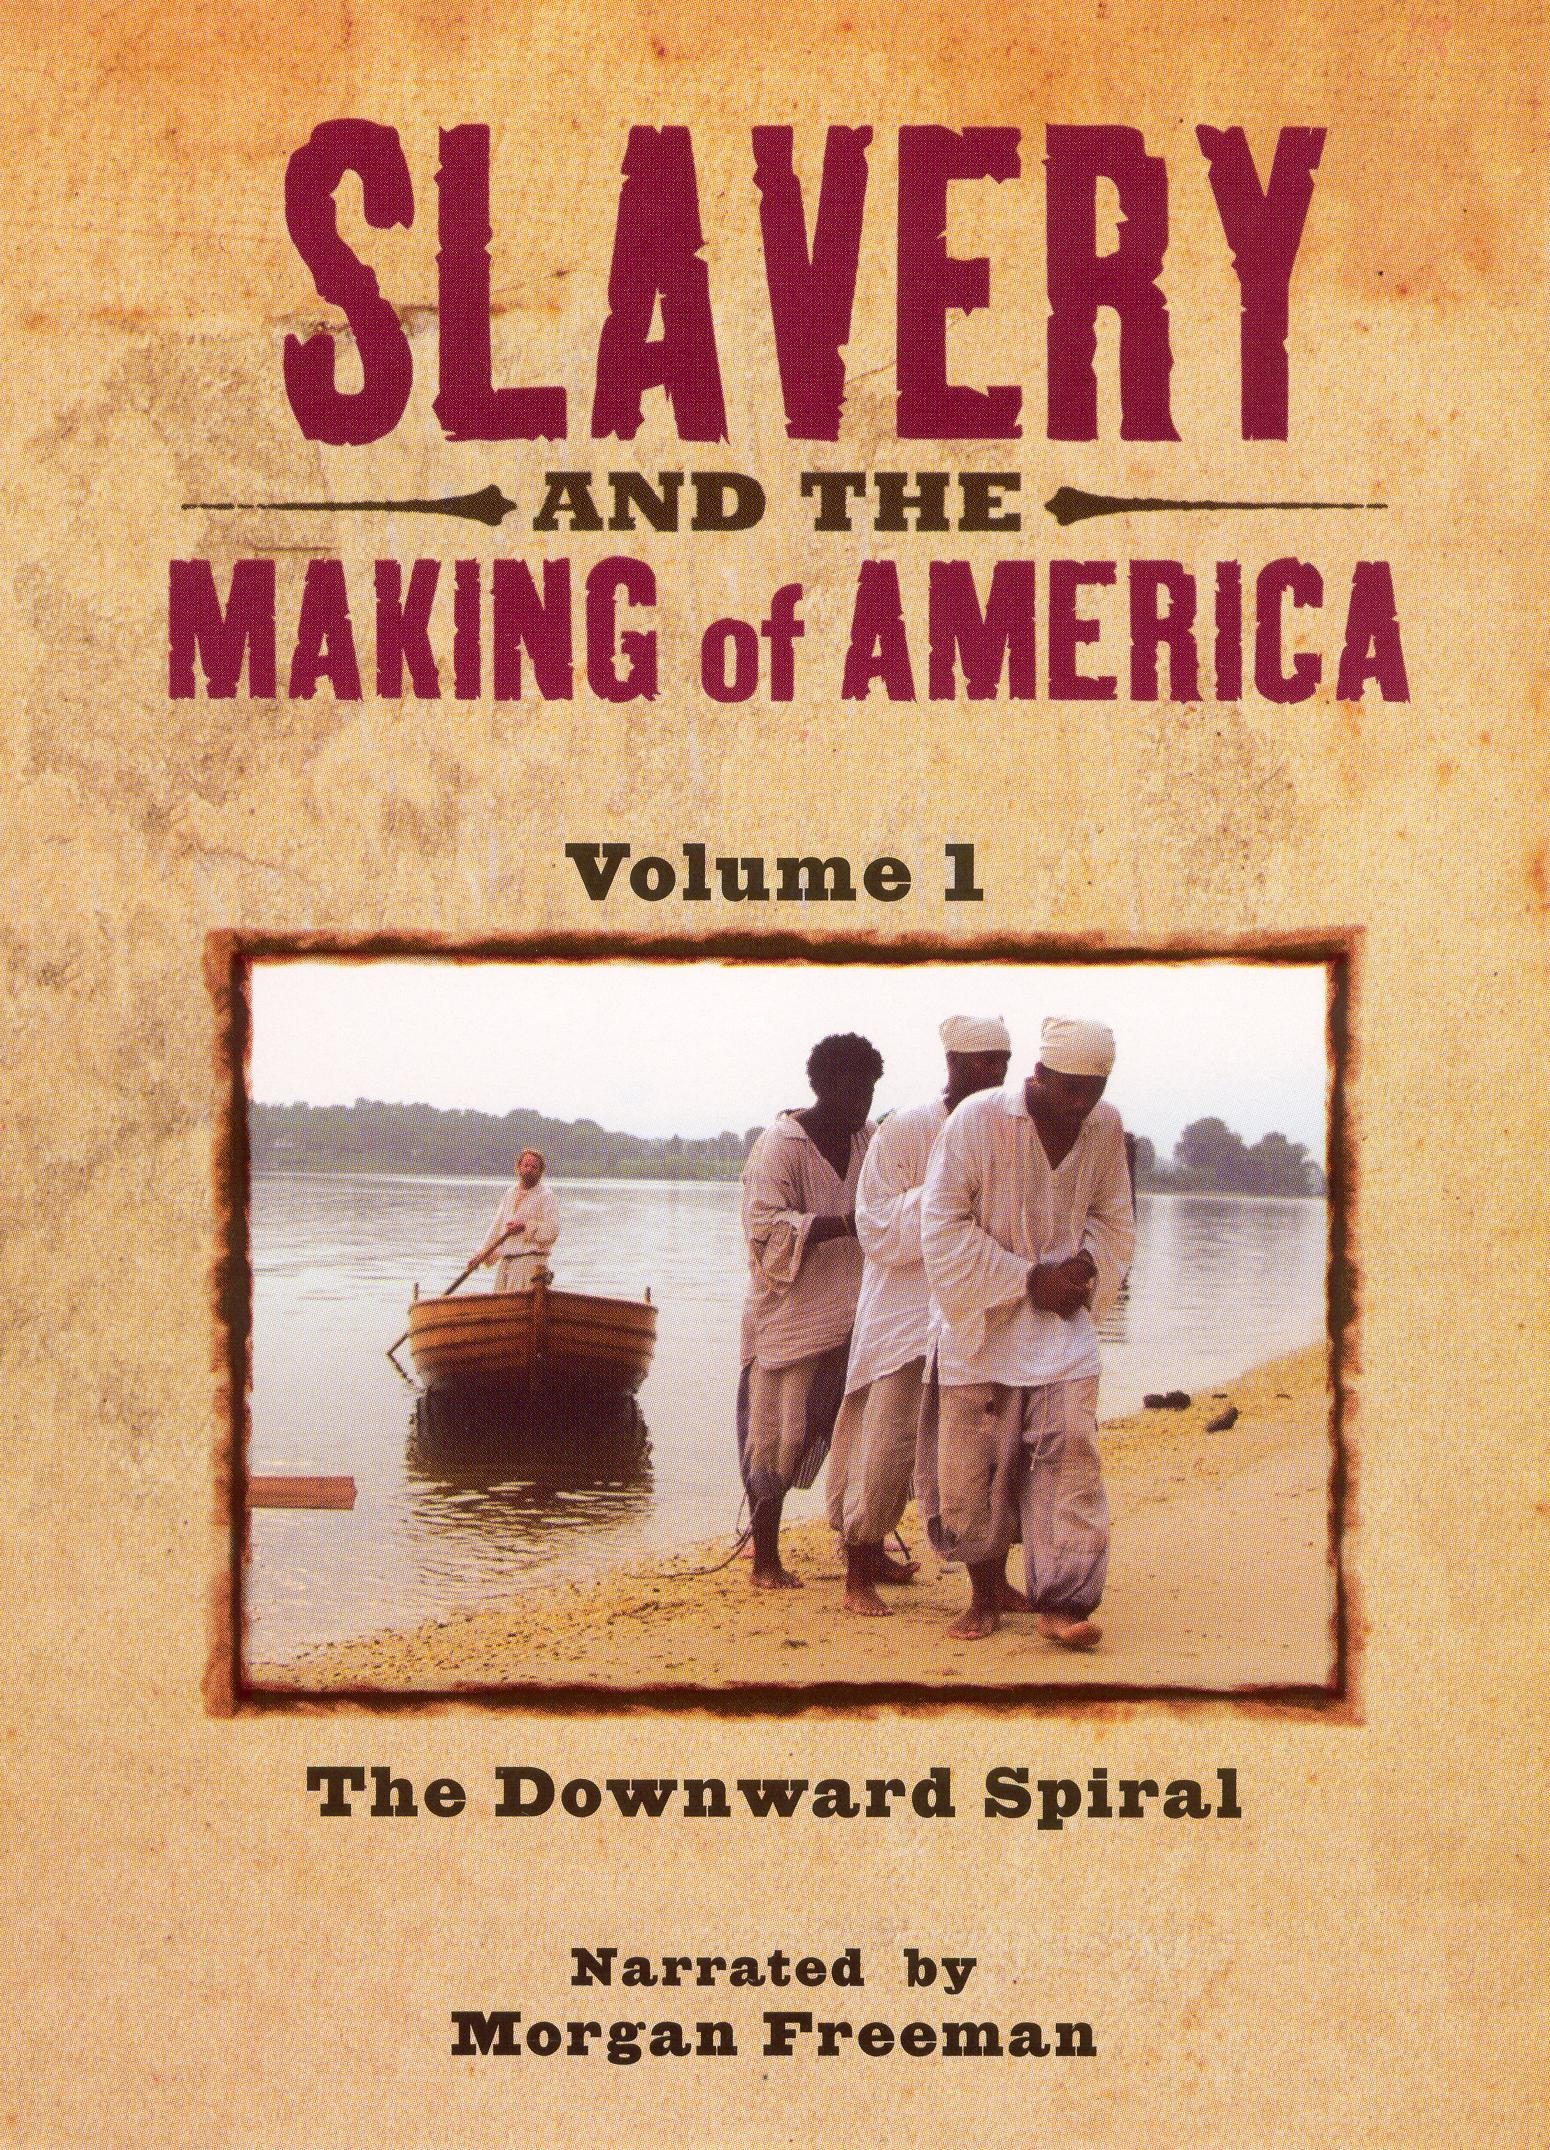 Slavery and the Making of America, Episode 1: The Downward Spiral